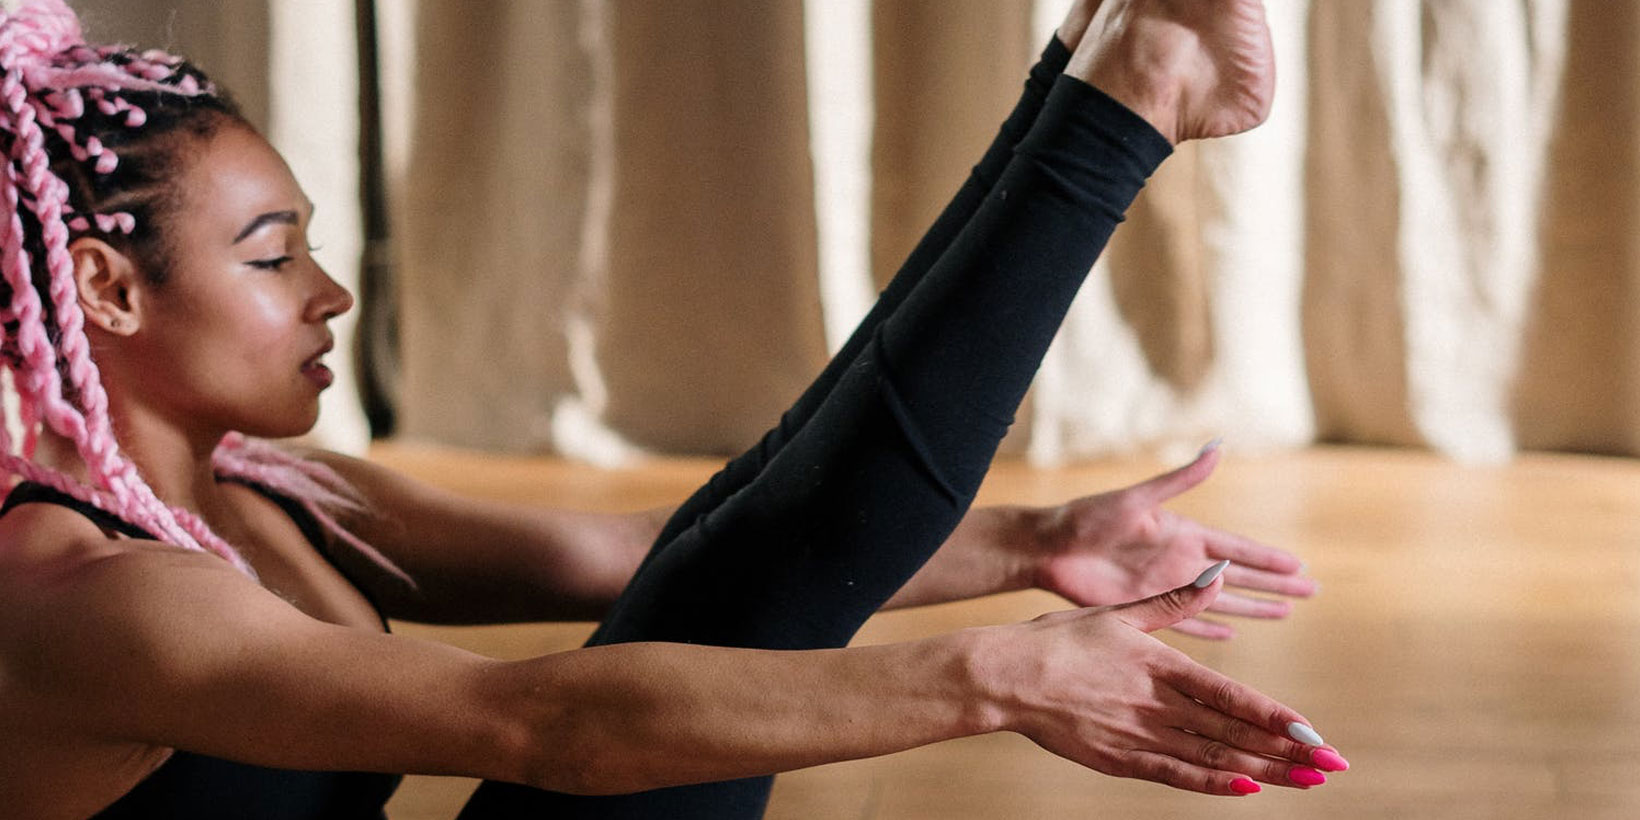 Afbeelding-tekst-How-To-Deal-With-Yoga-Students-Who-Do-Their-Own-Thing-